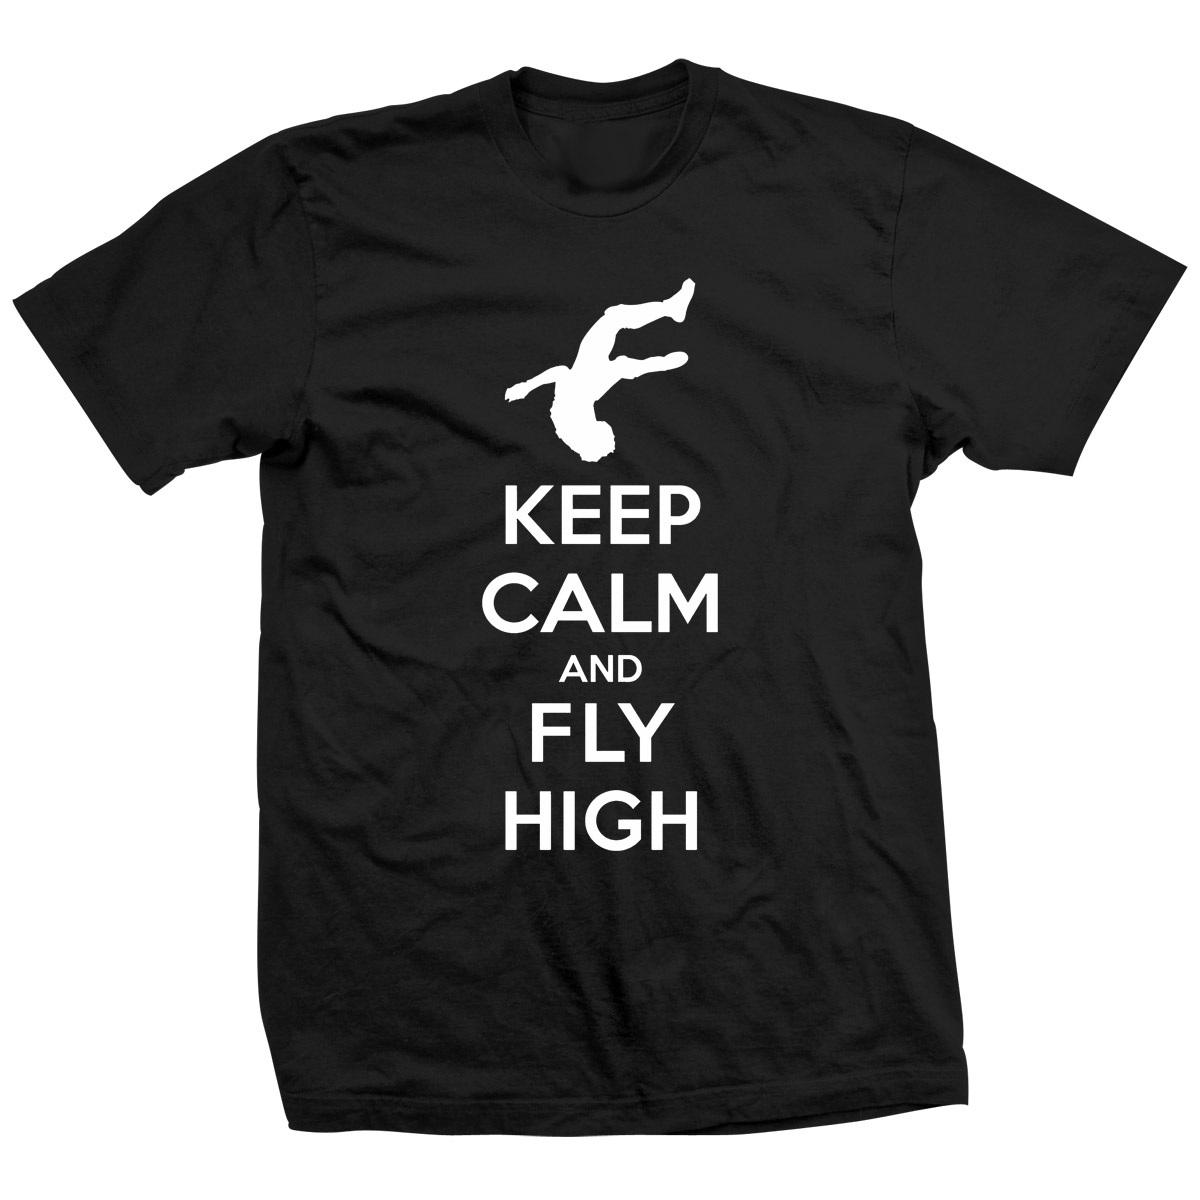 Ricochet Keep Calm T-shirt